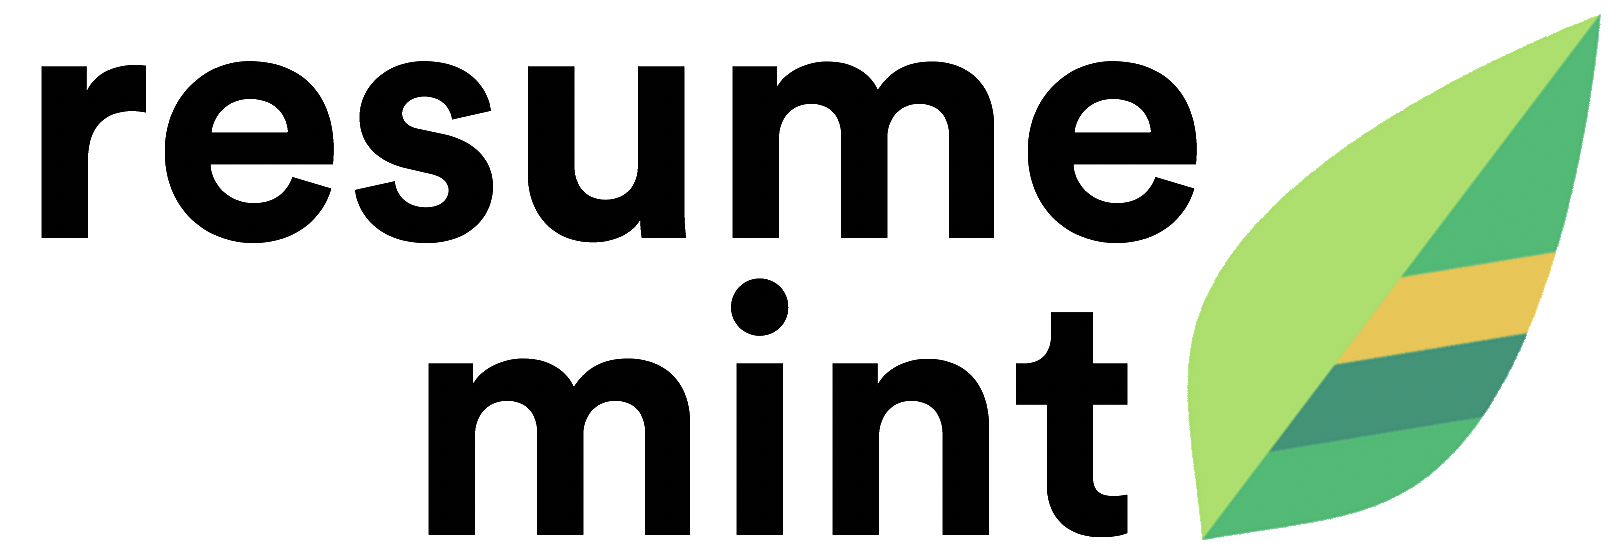 Resume Mint Logo 2017-01-12 02-36-52.png